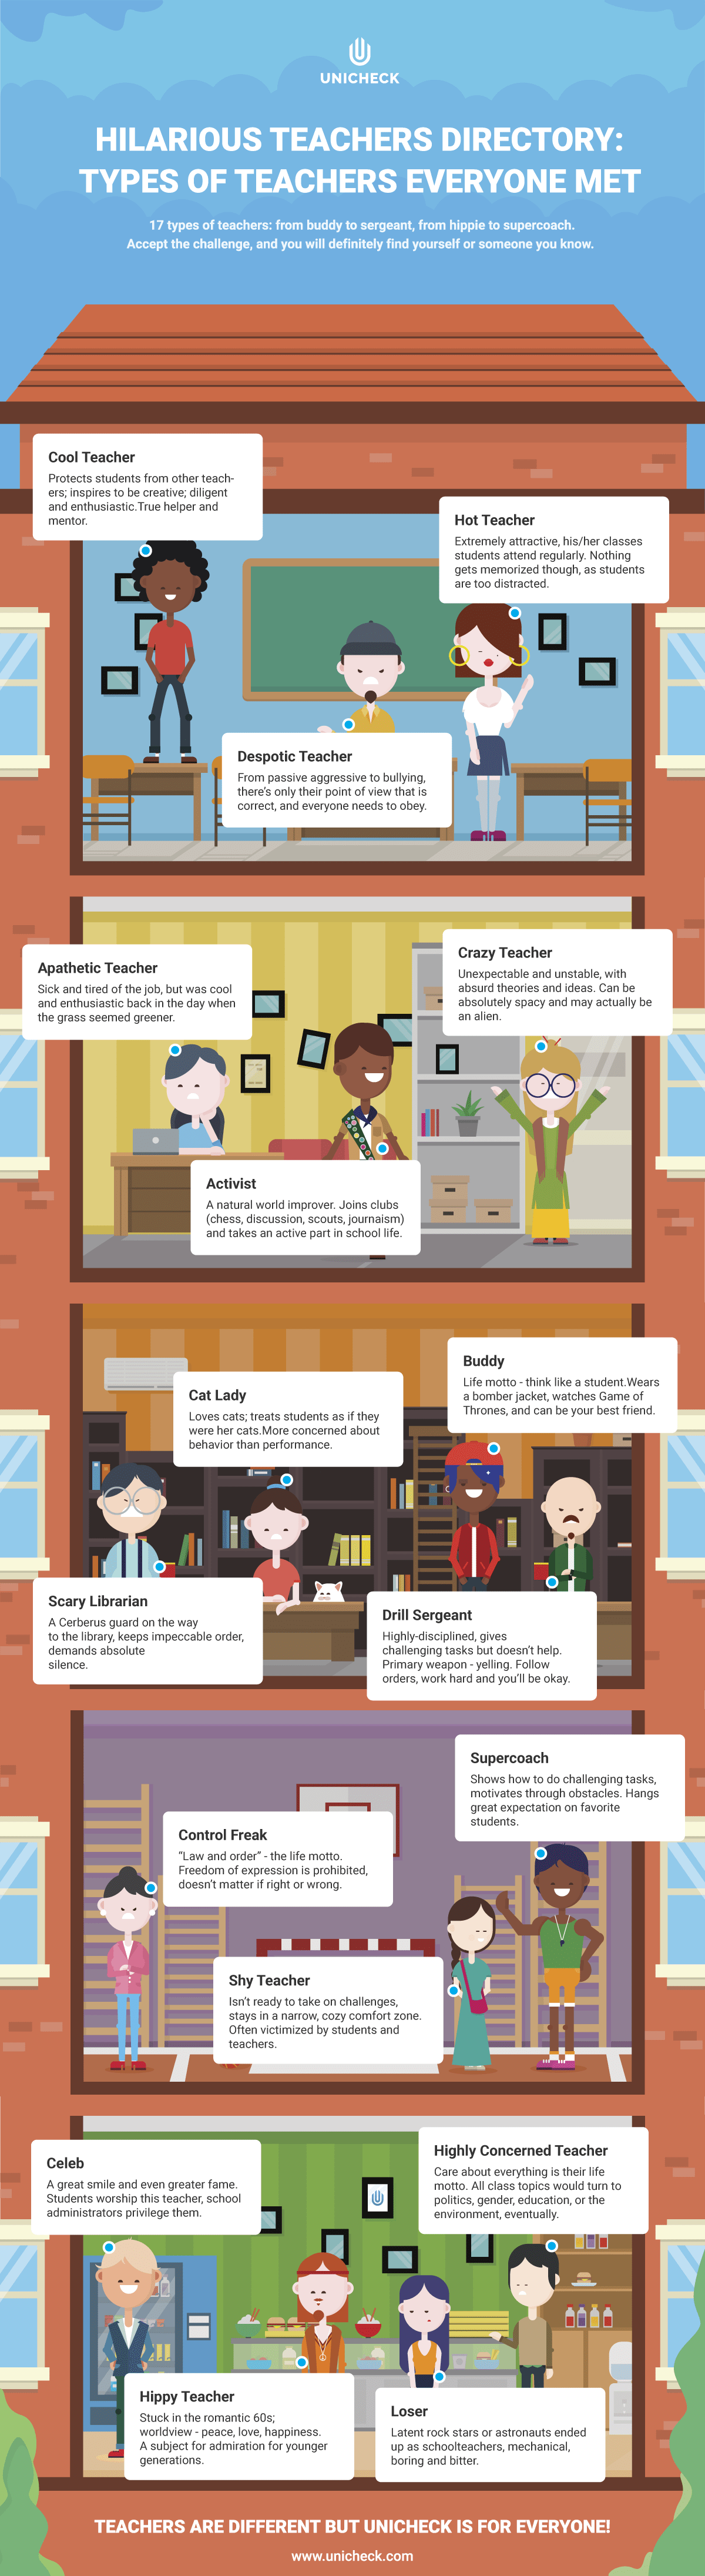 teacher-types-directory-infographic